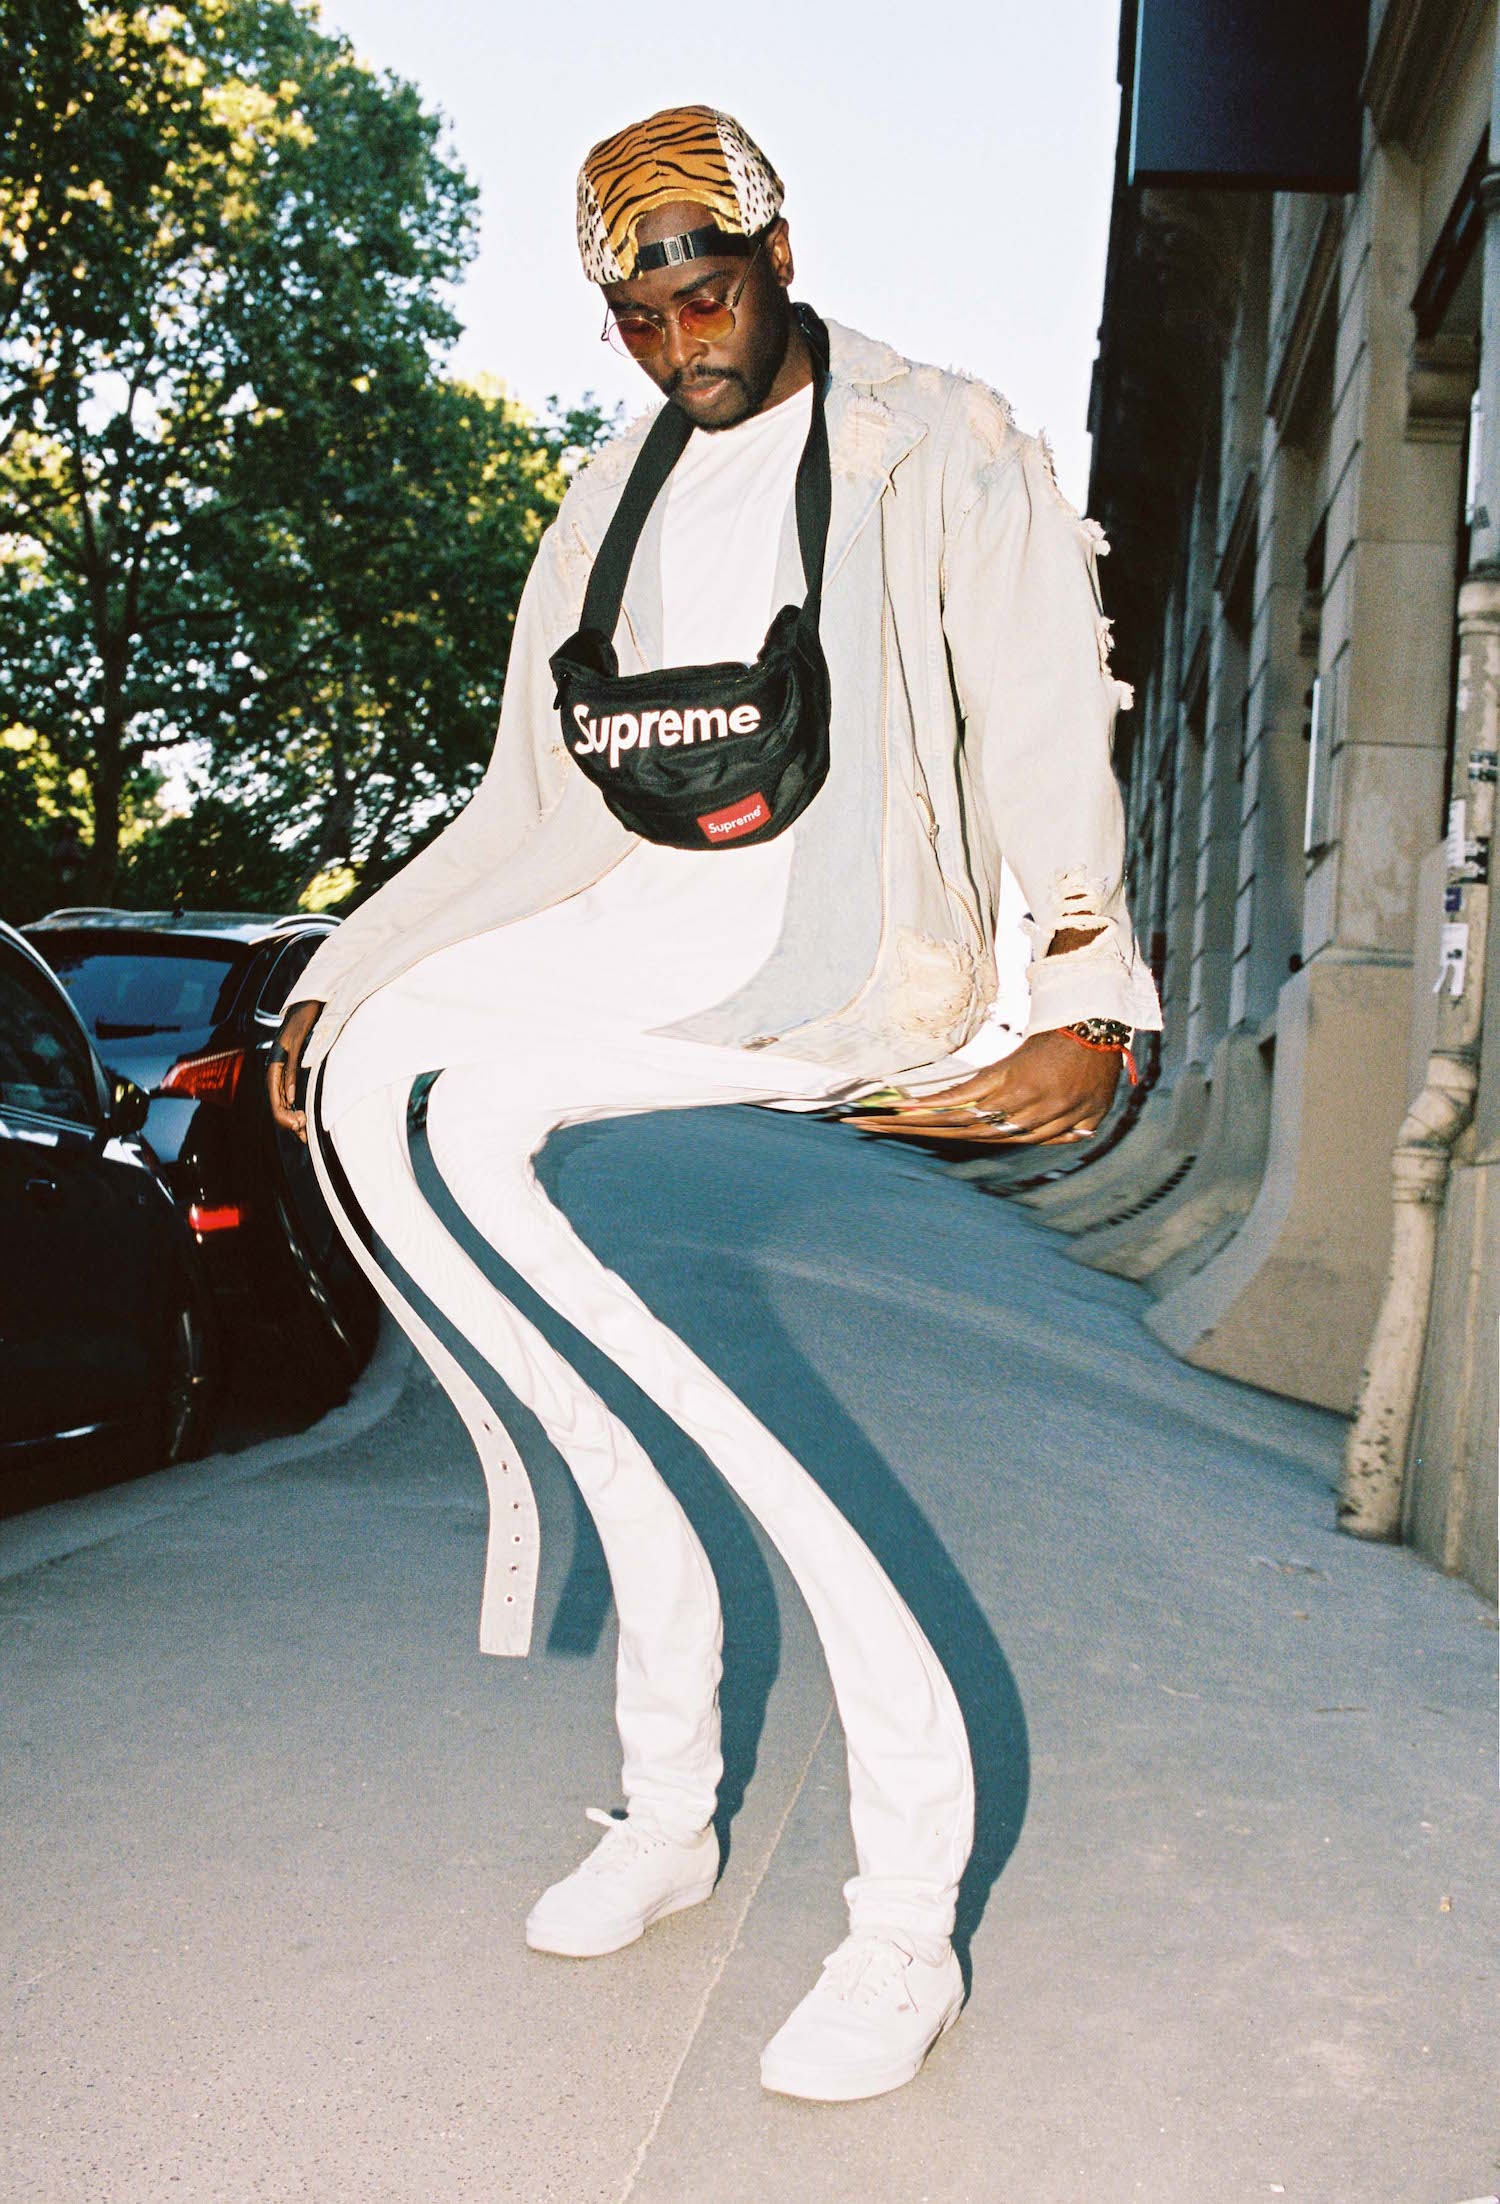 Lessons In Street Style According To The Pfw Men Goers Sleek Magazine